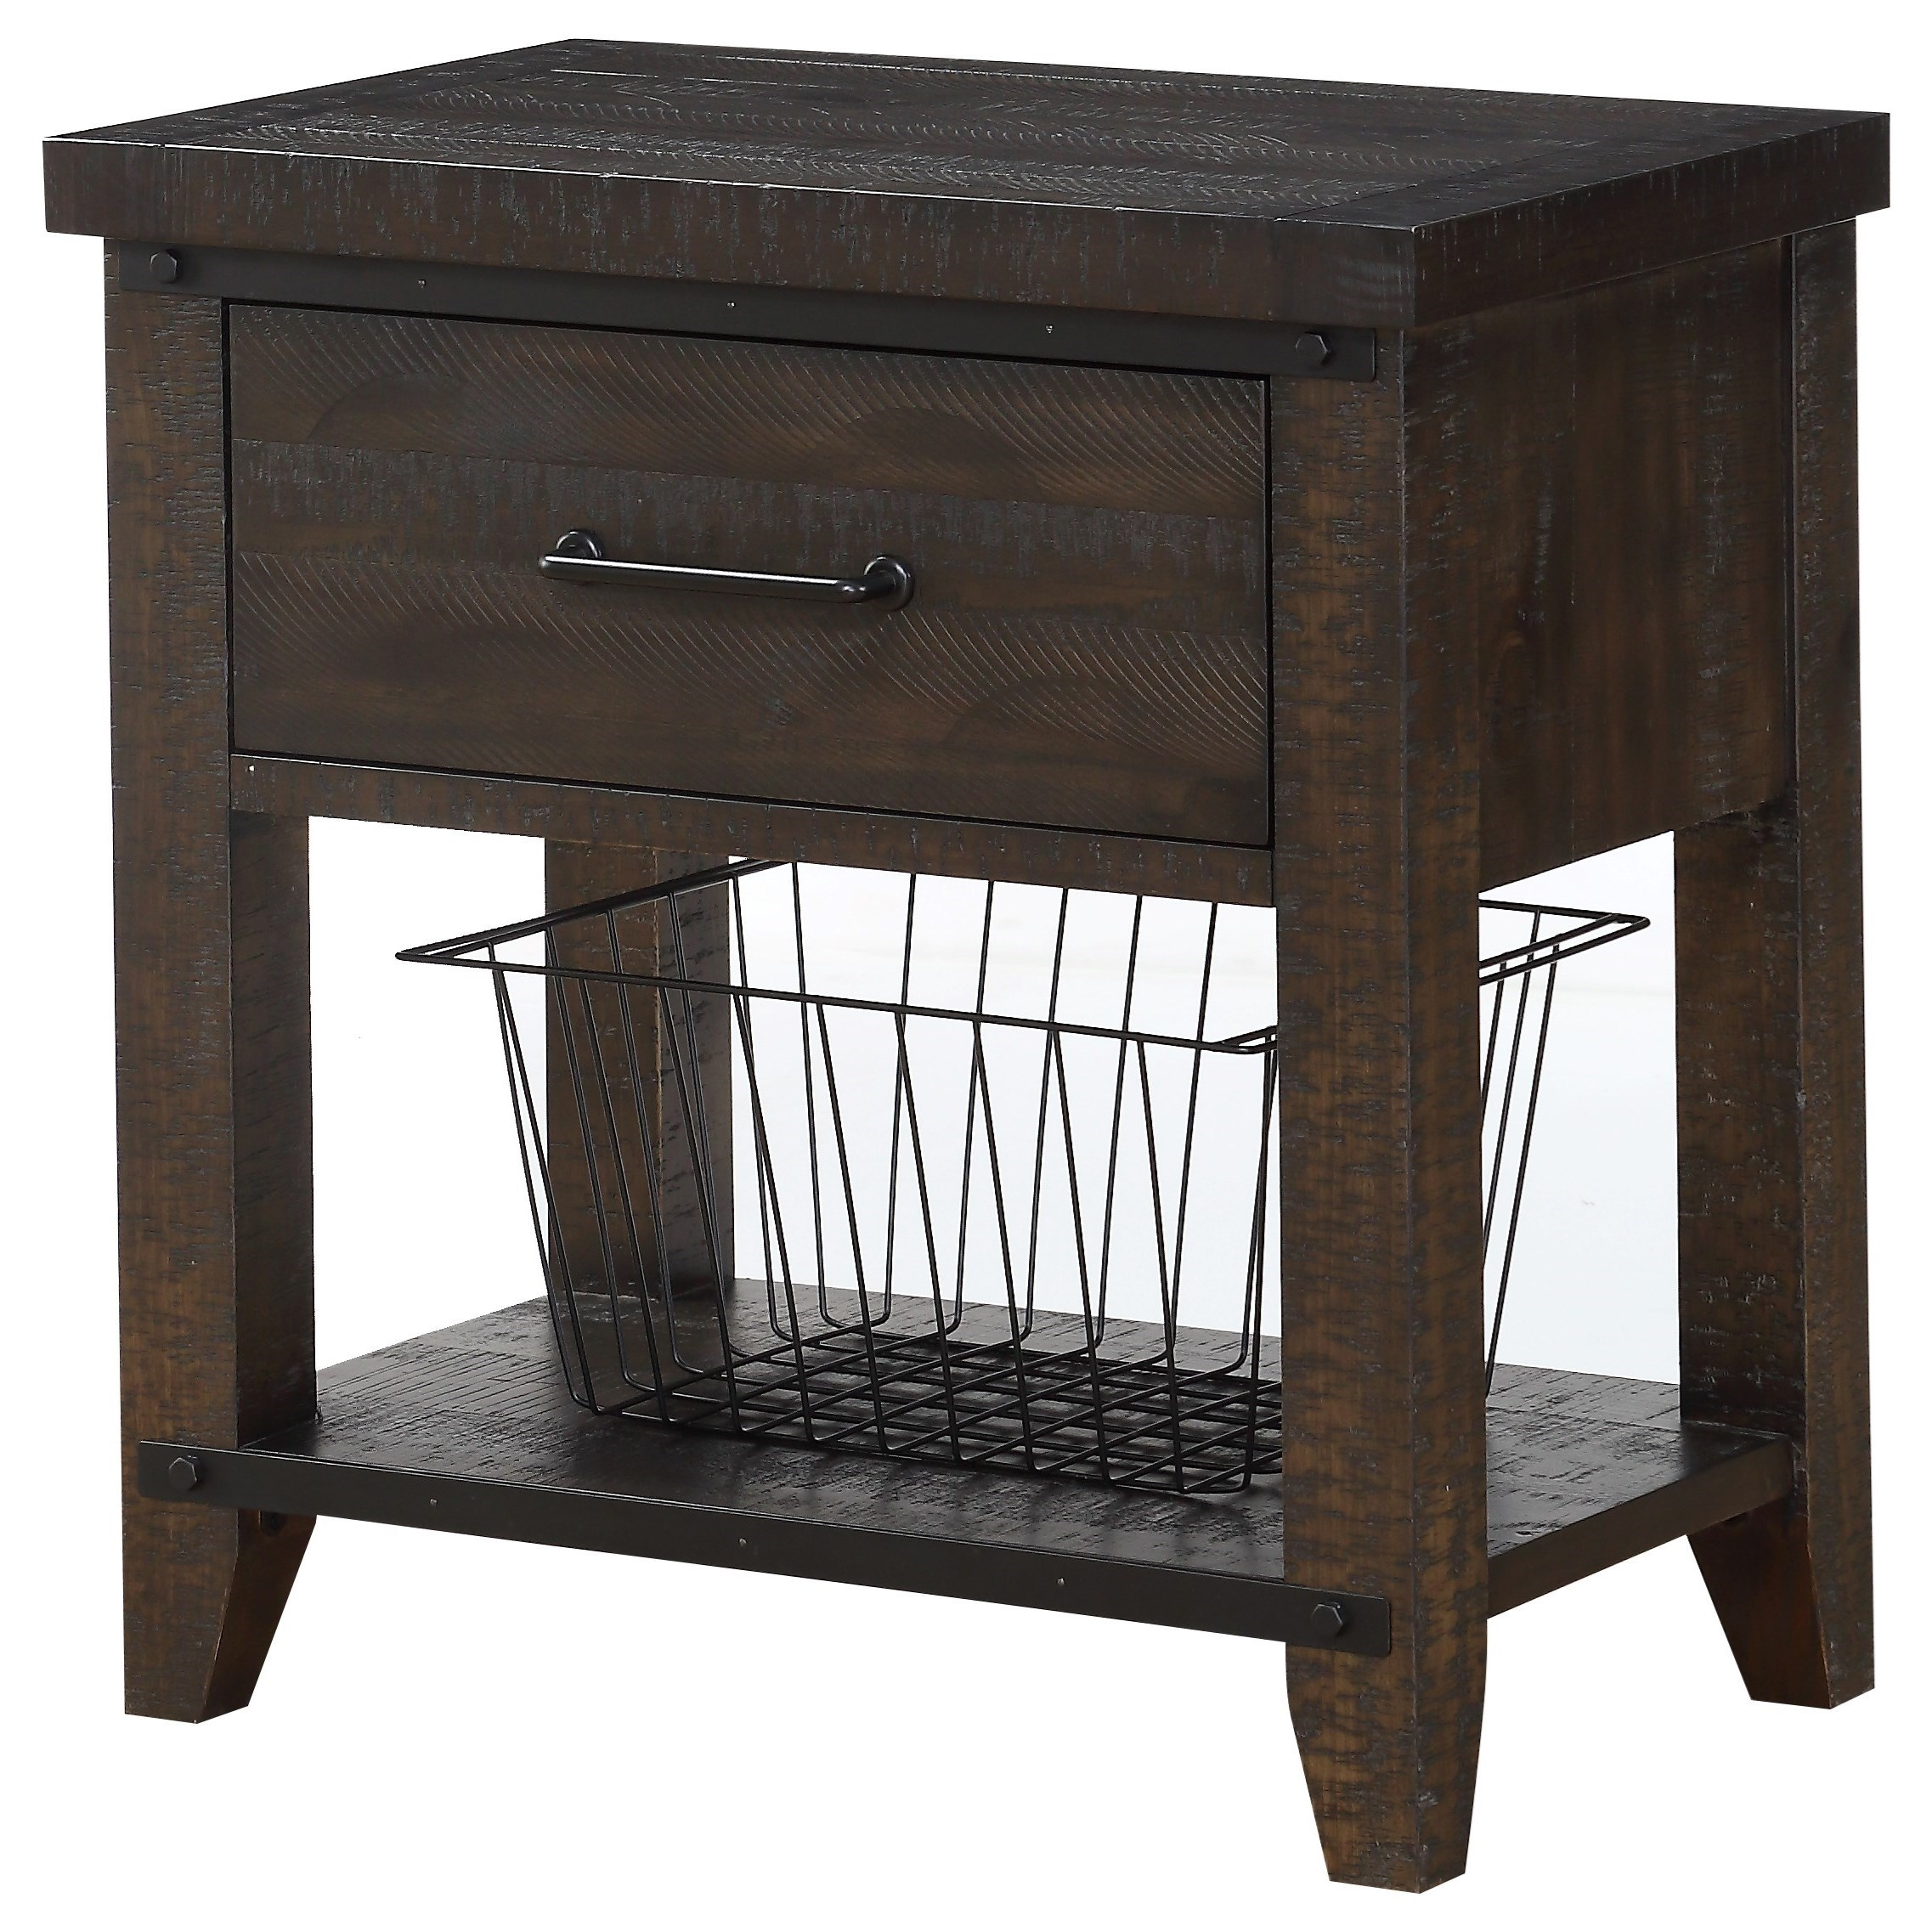 Durango 1-Drawer Nightstand with Metal Basket by HH at Walker's Furniture